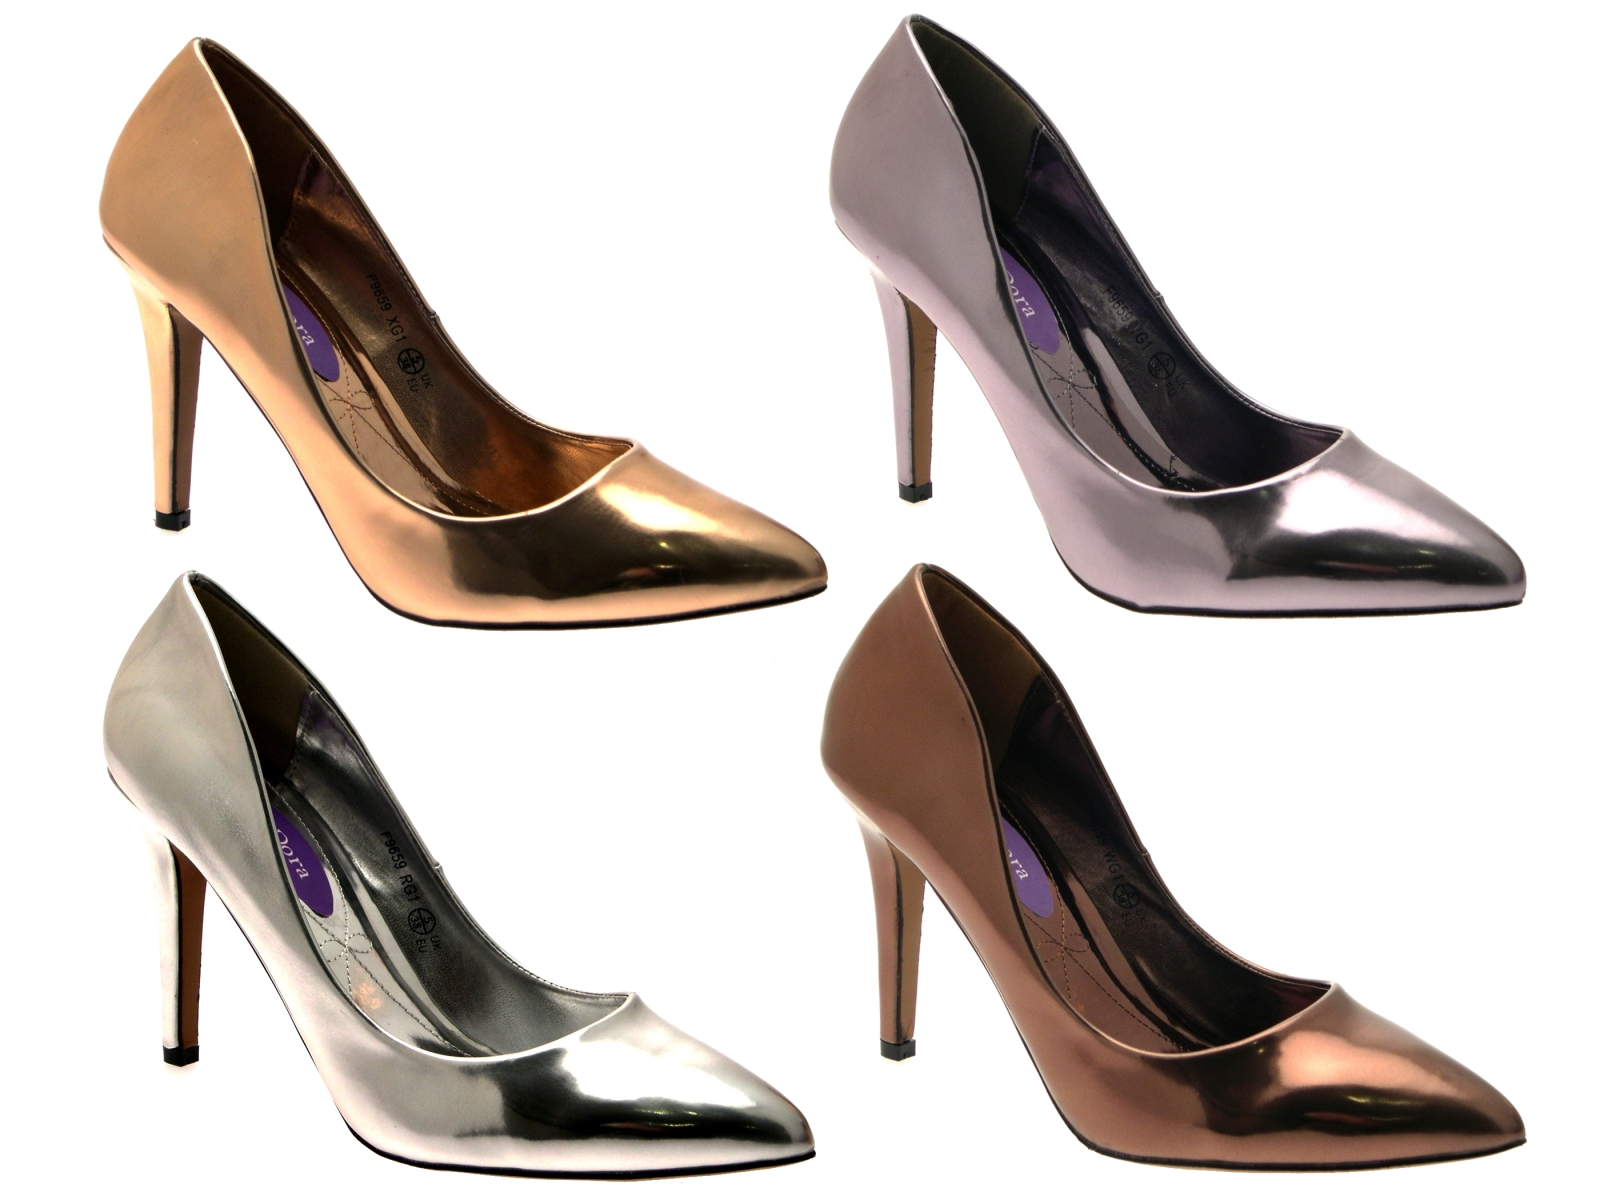 Womens-Metallic-Pointed-Toe-Court-Stiletto-High-Heels-Ladies-Work-Office-Shoes thumbnail 21